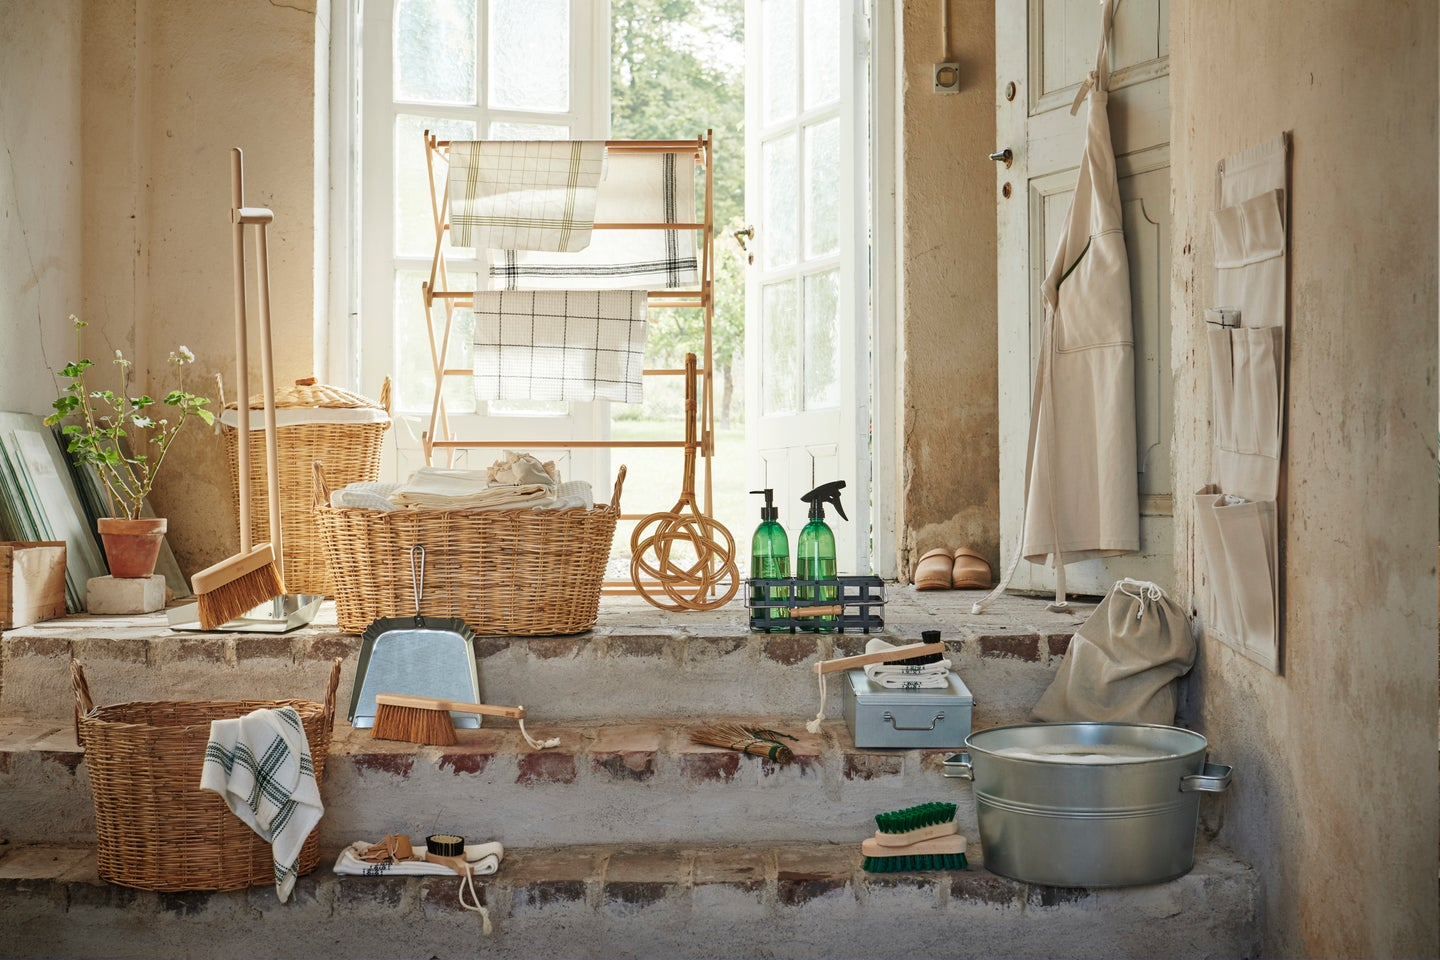 natural material cleaning supplies in a room